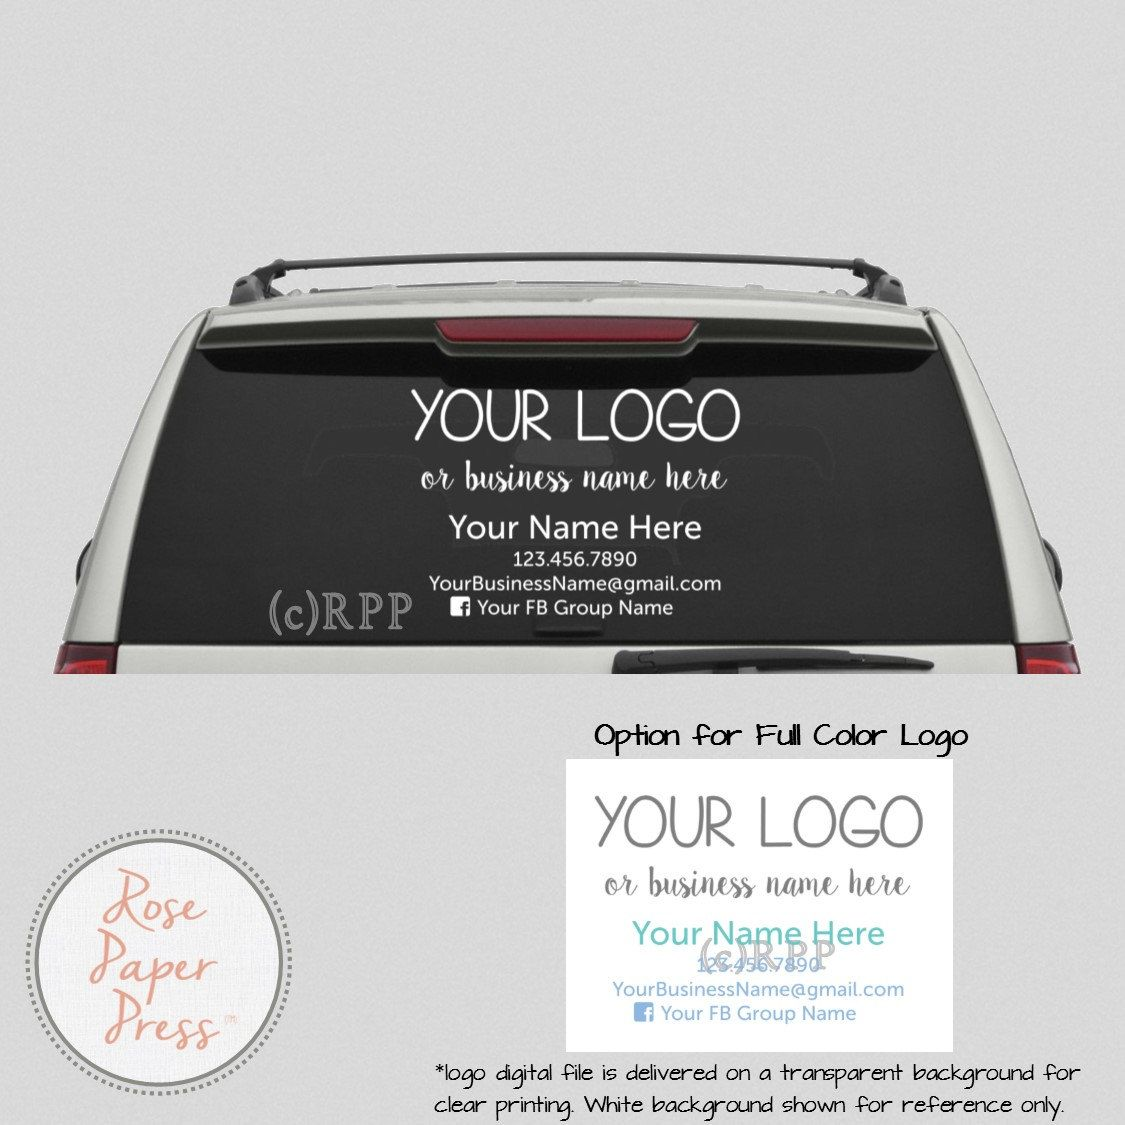 photograph about Printable Window Decals named Automobile Decal Personalized Printable Decal Little Place of work